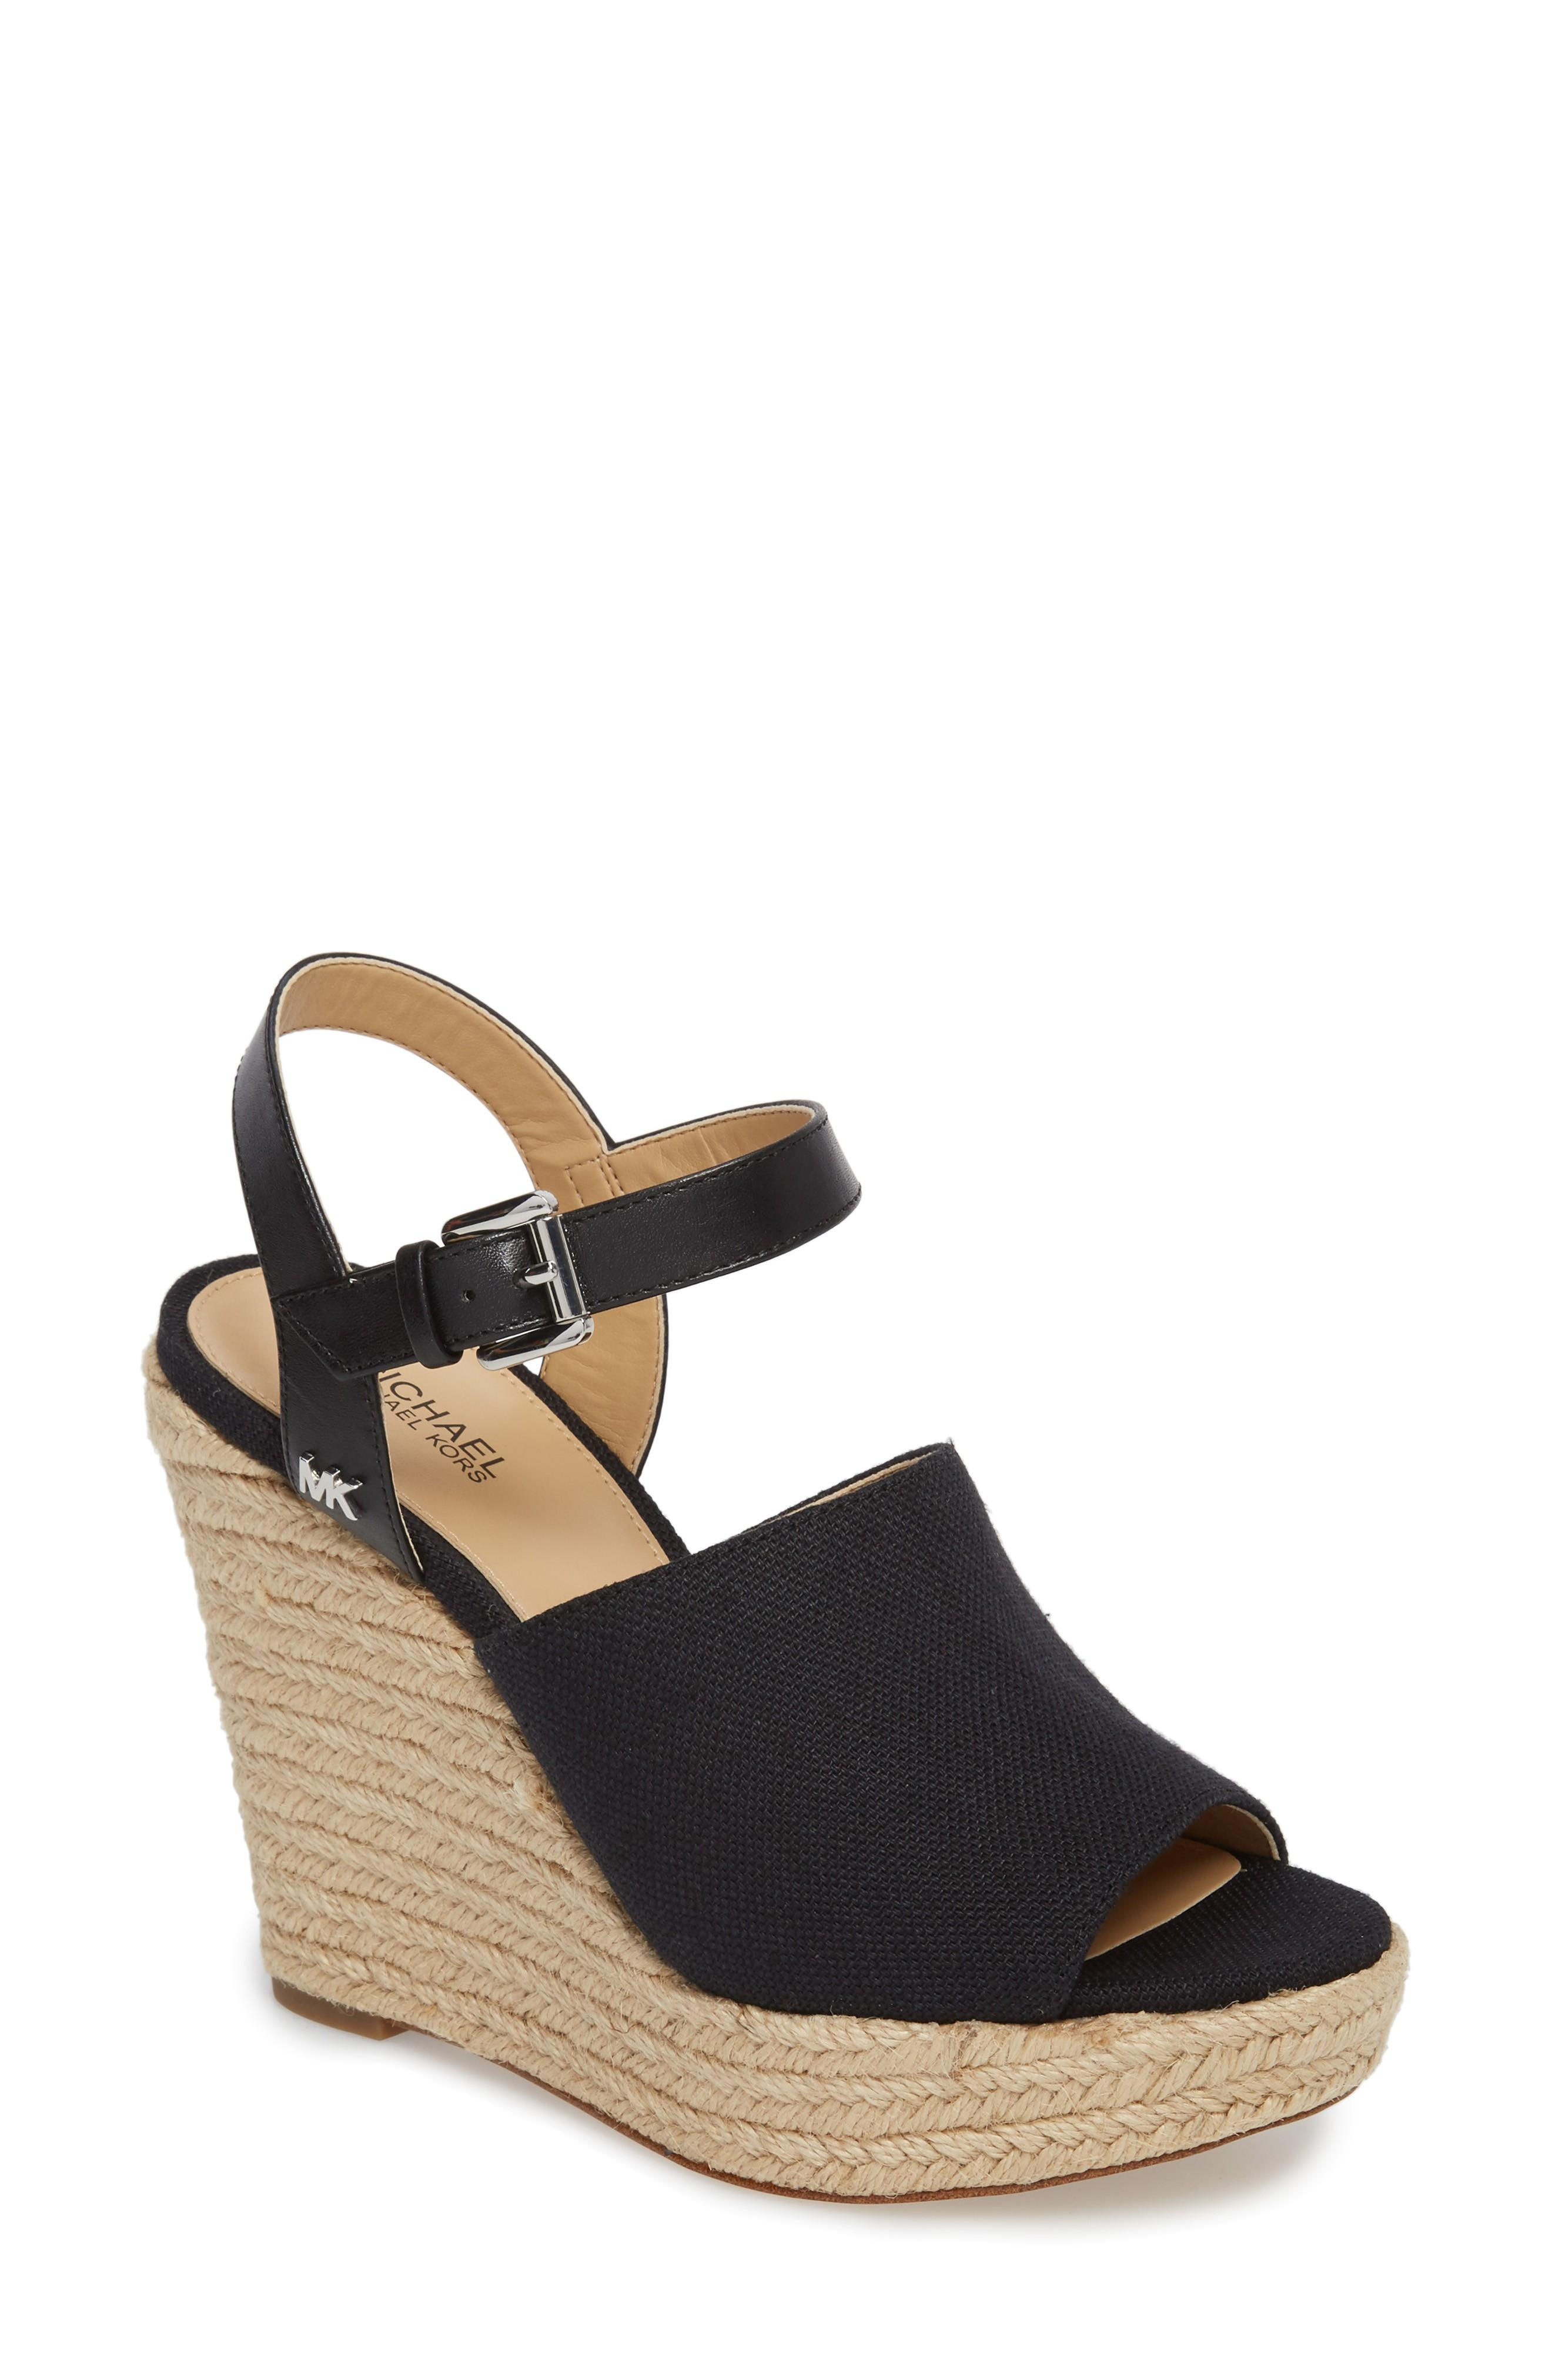 6d261a95082f Michael Michael Kors Penelope Espadrille Wedge Sandal In Black Canvas